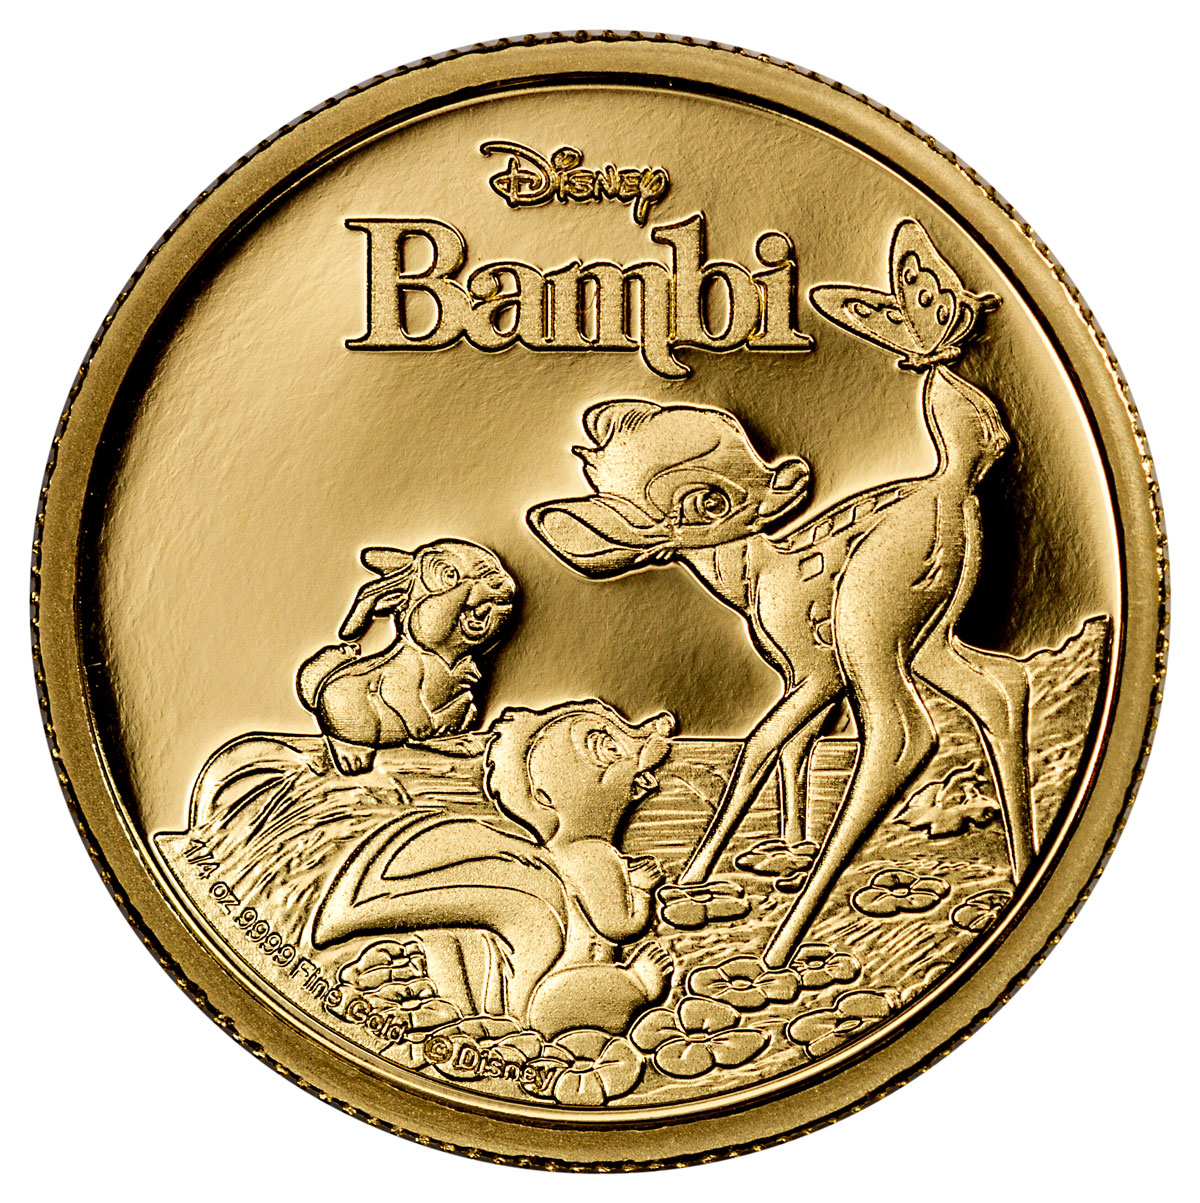 2017 Niue Iconic Disney - Bambi 75th Anniversary 1/4 oz Gold Proof $25 Coin GEM Proof OGP